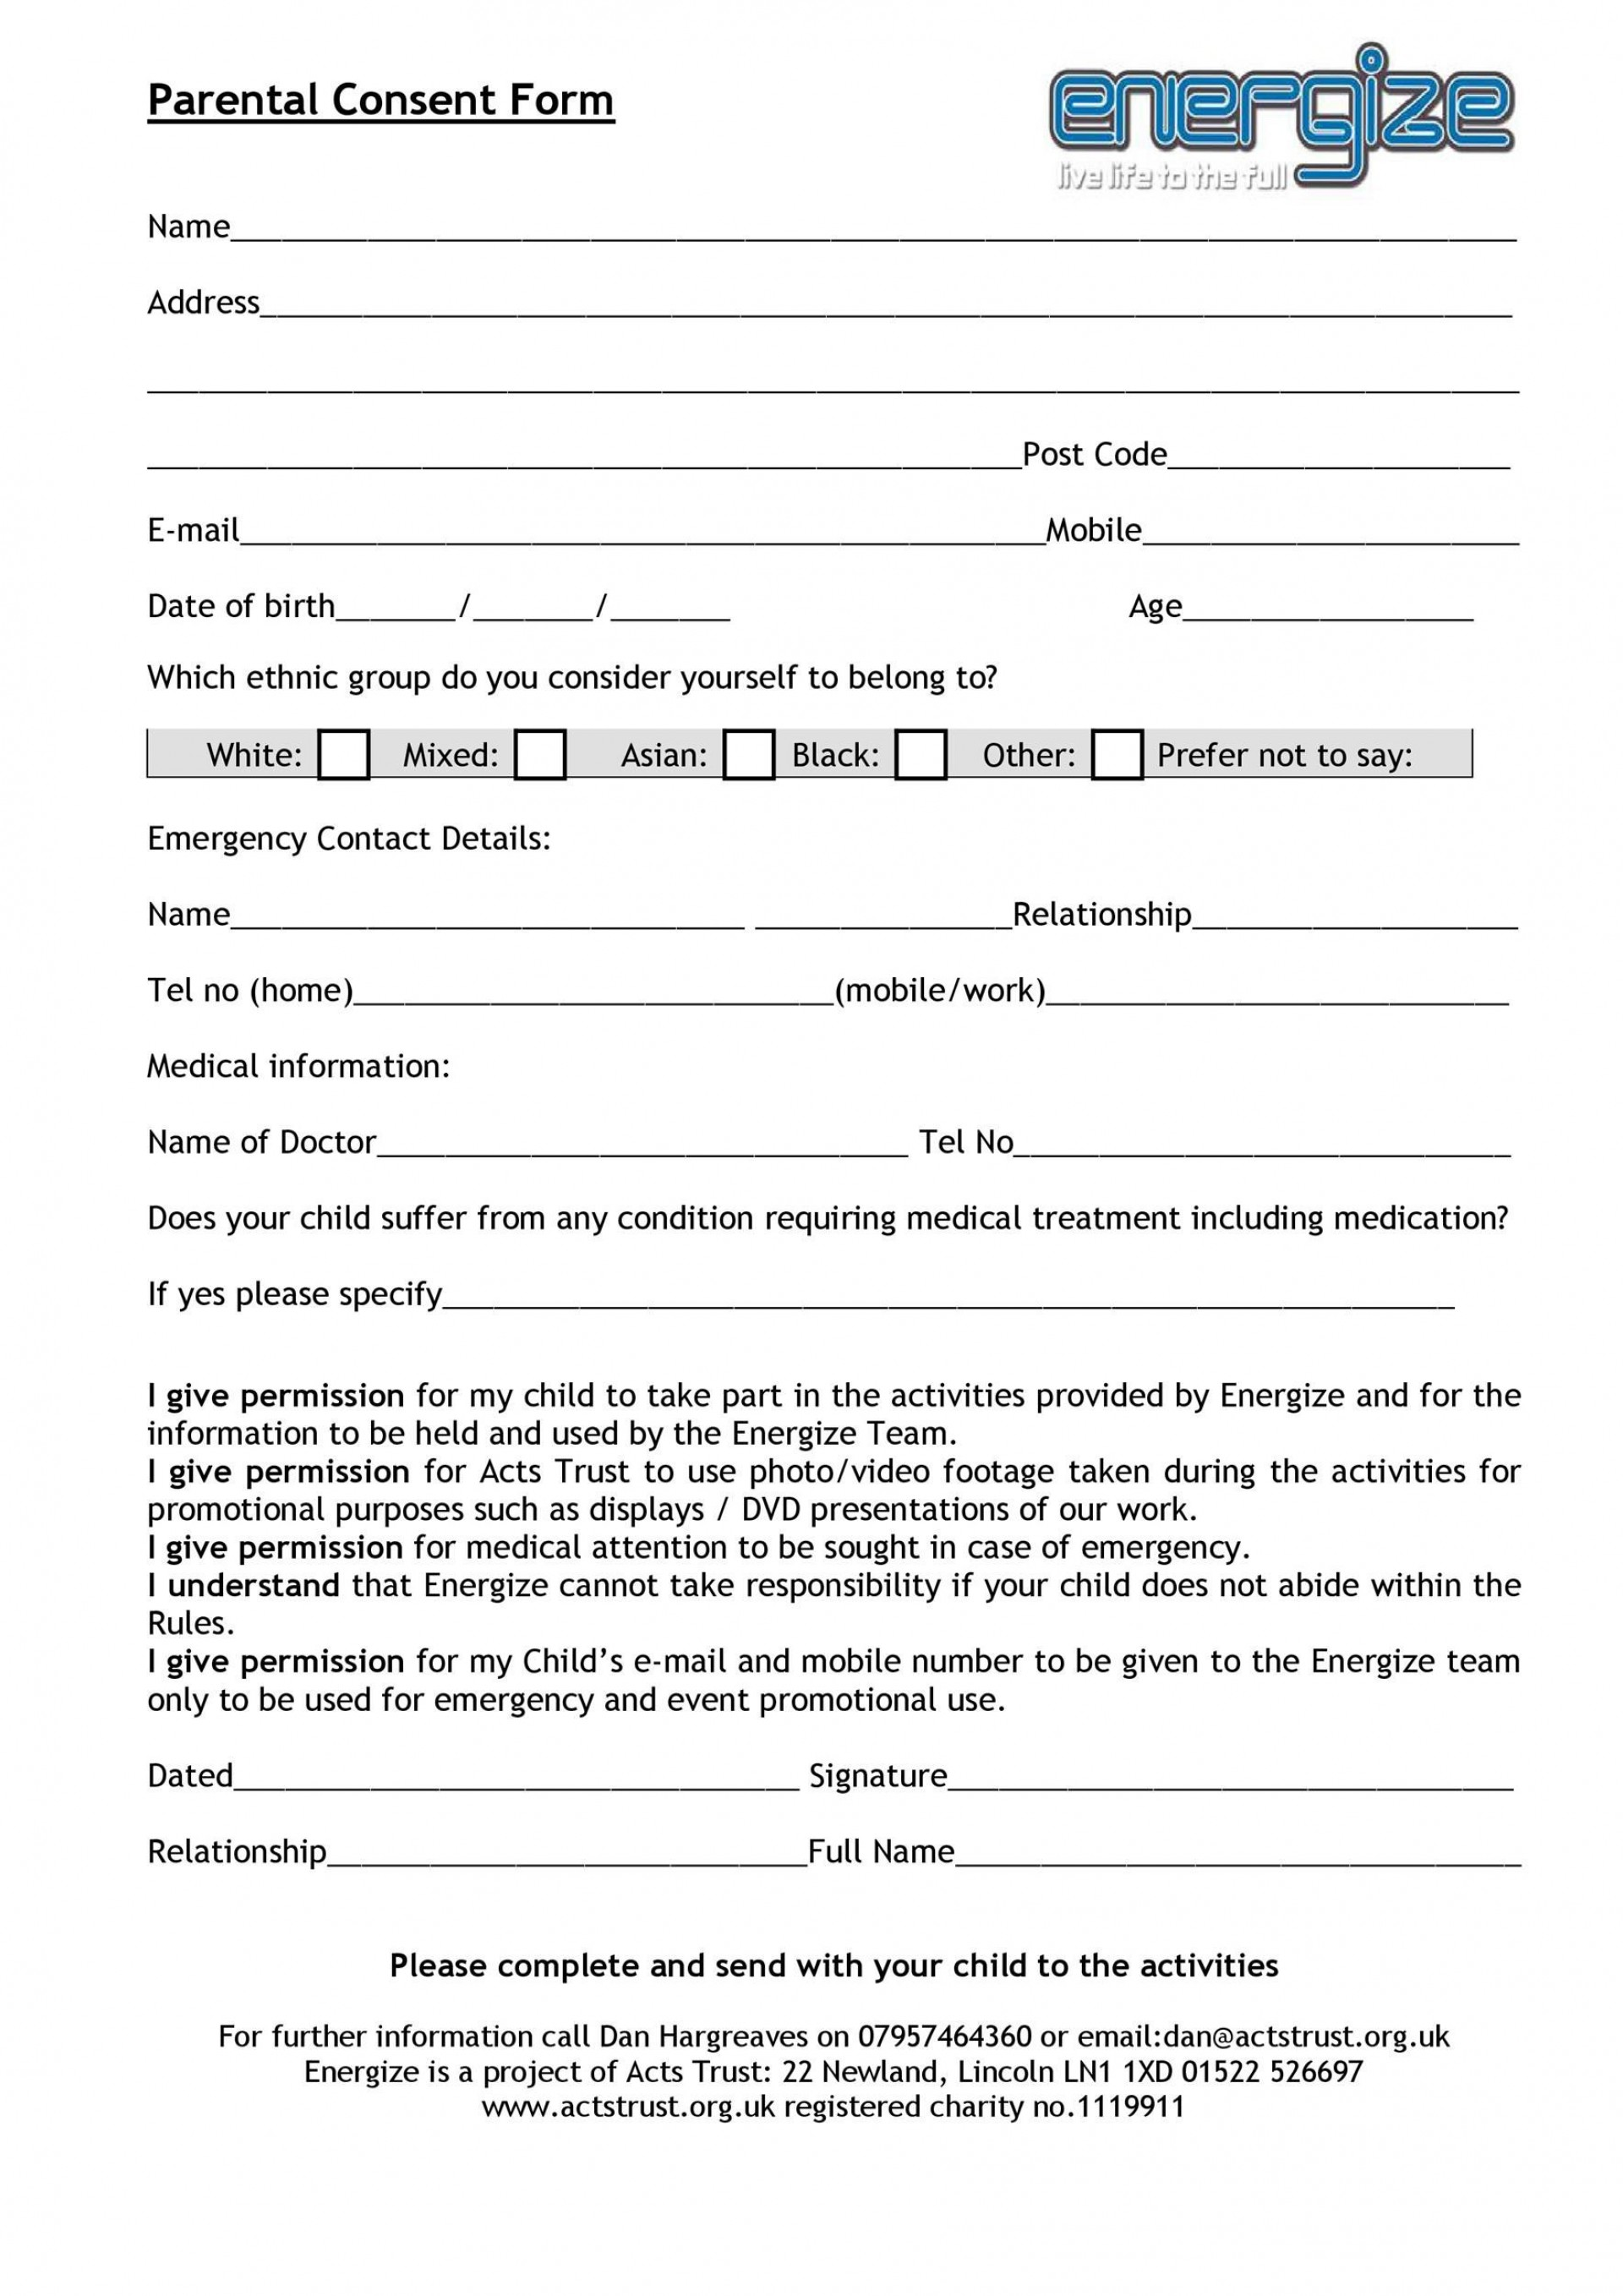 007 Wonderful Free Parental Medical Consent Form Template Design 1920